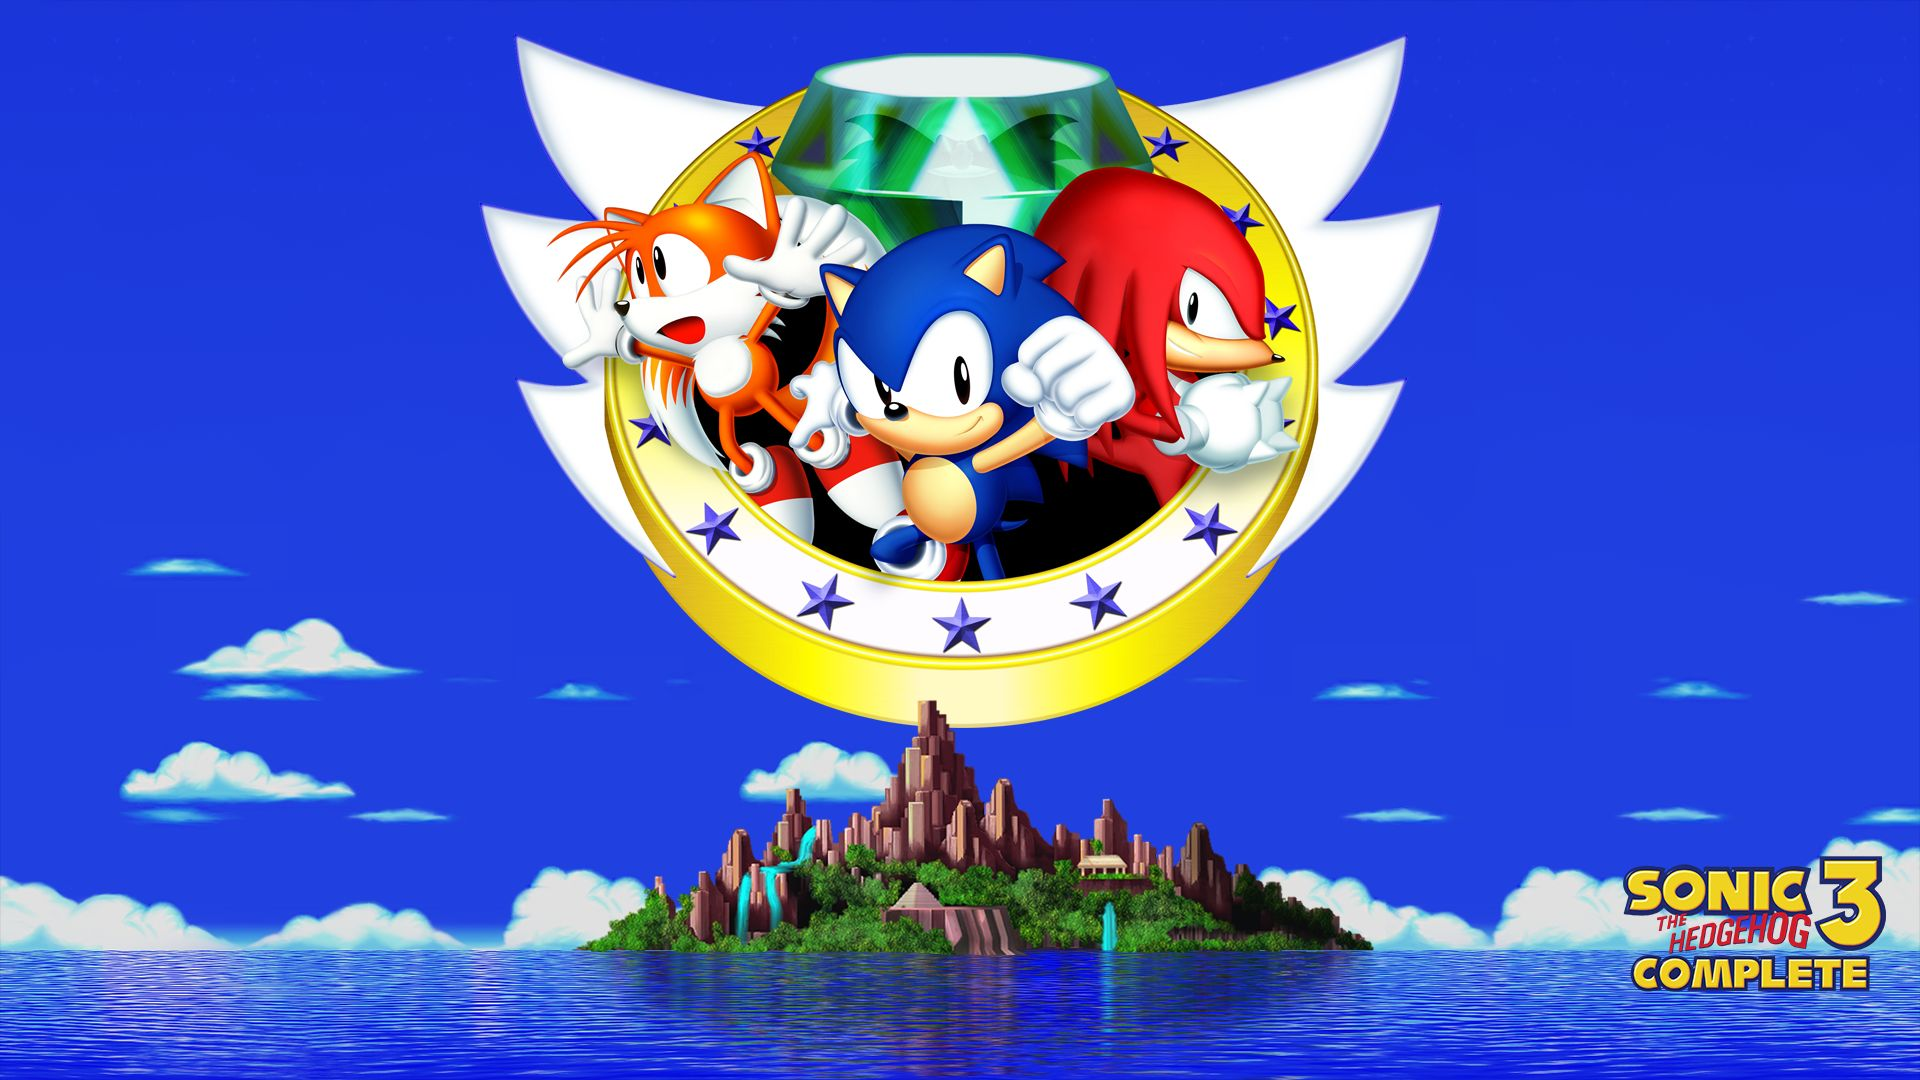 Sonic The Hedgehog 3 Hd Wallpaper Background Image 1920x1080 Id 607295 Wallpaper Abyss